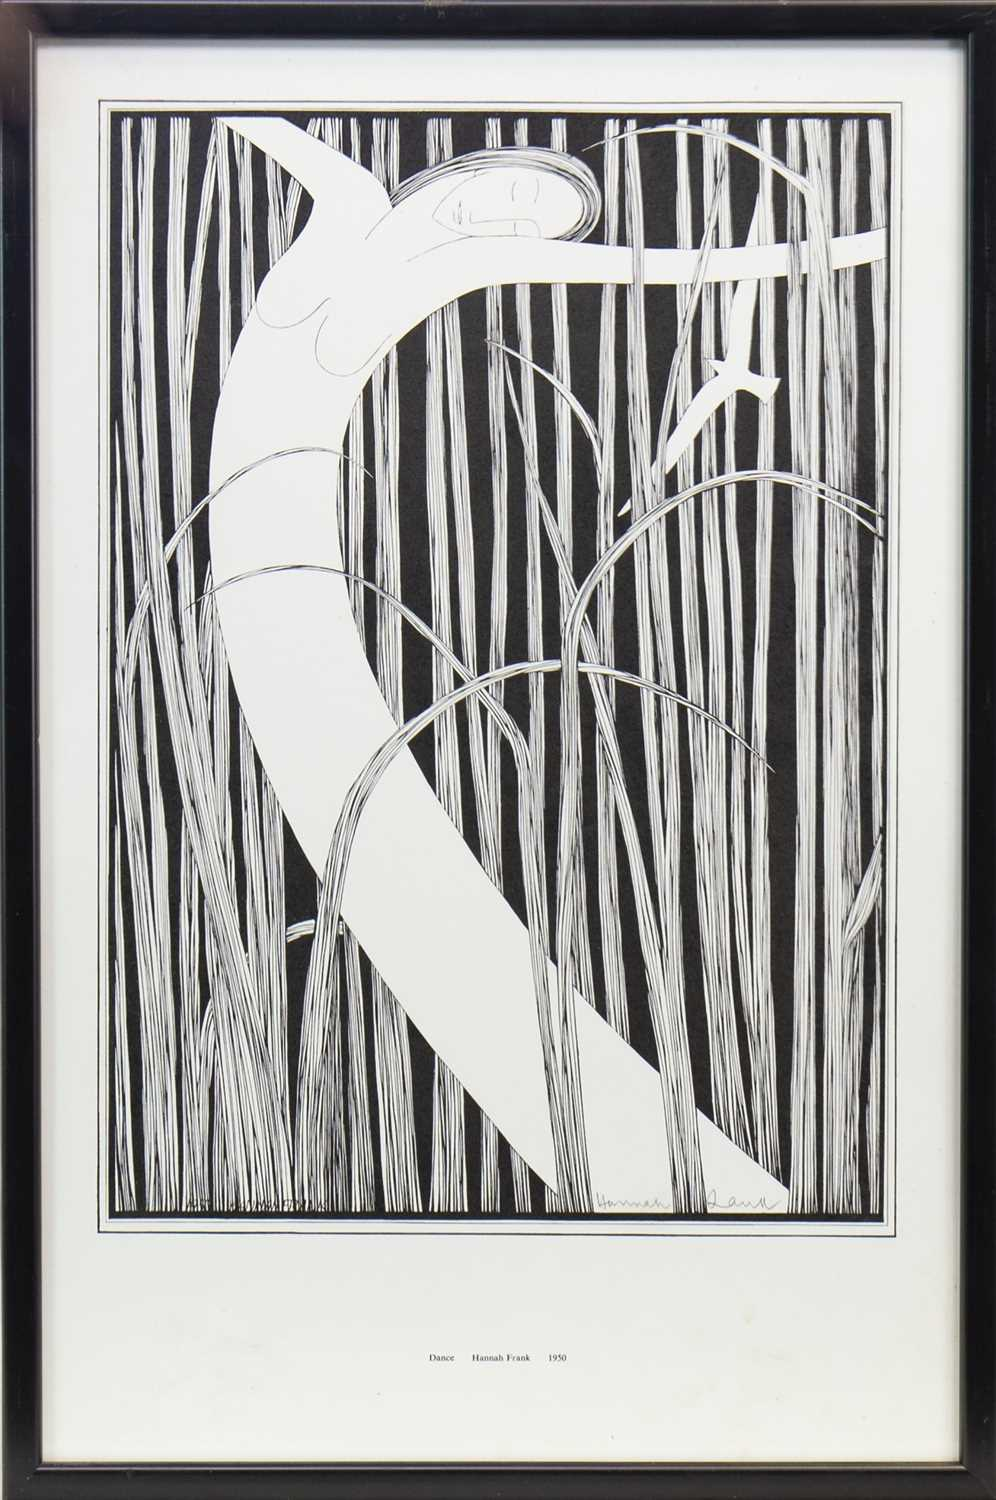 Lot 505-DANCE, A LITHOGRAPH BY HANNAH FRANK